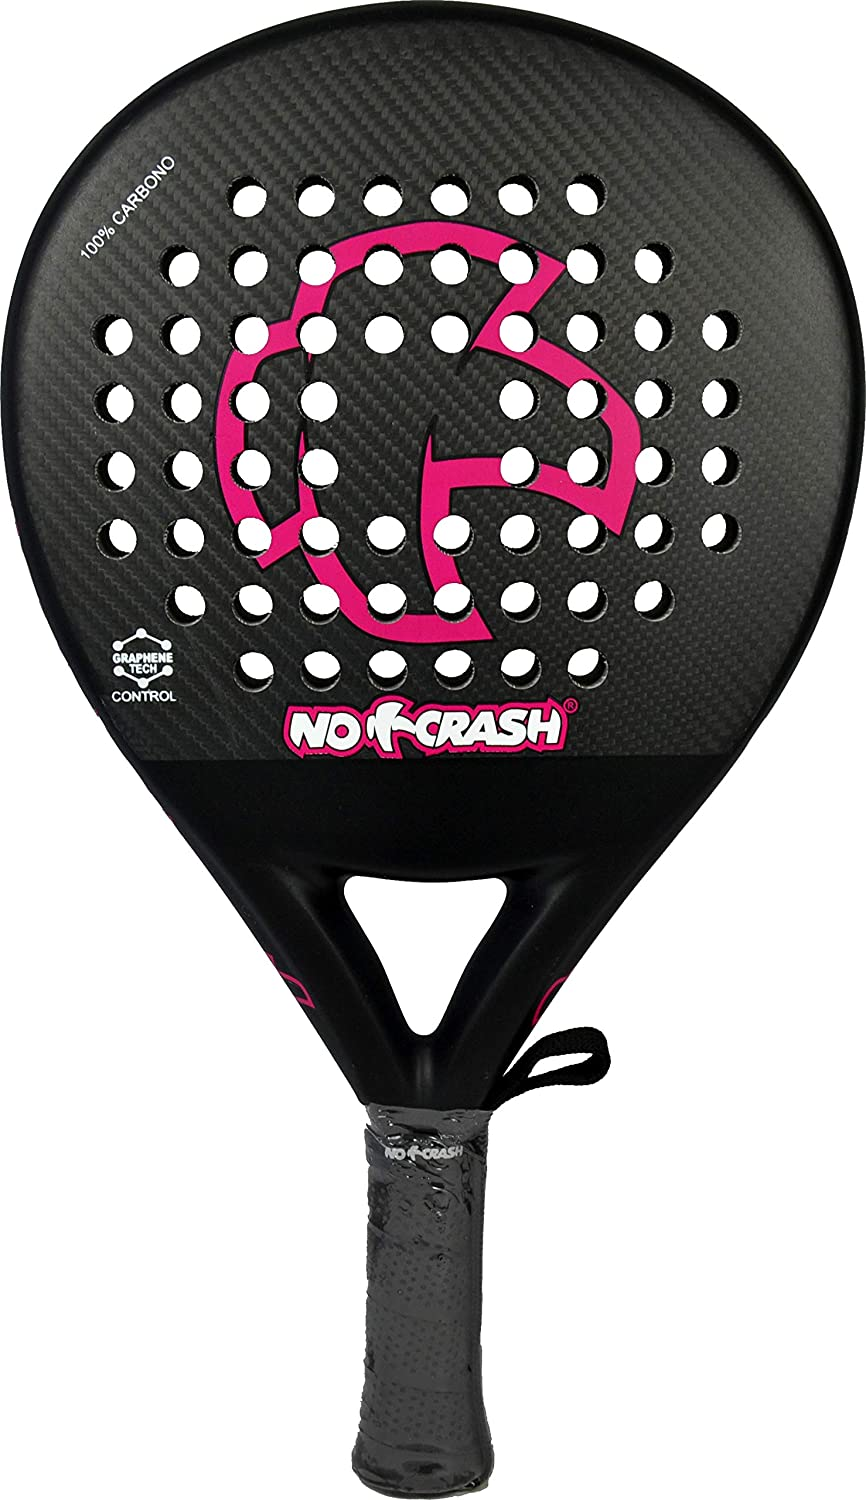 No+Crash Pala Fucsia Control Edition 2018-2019 (Carbono Y ...